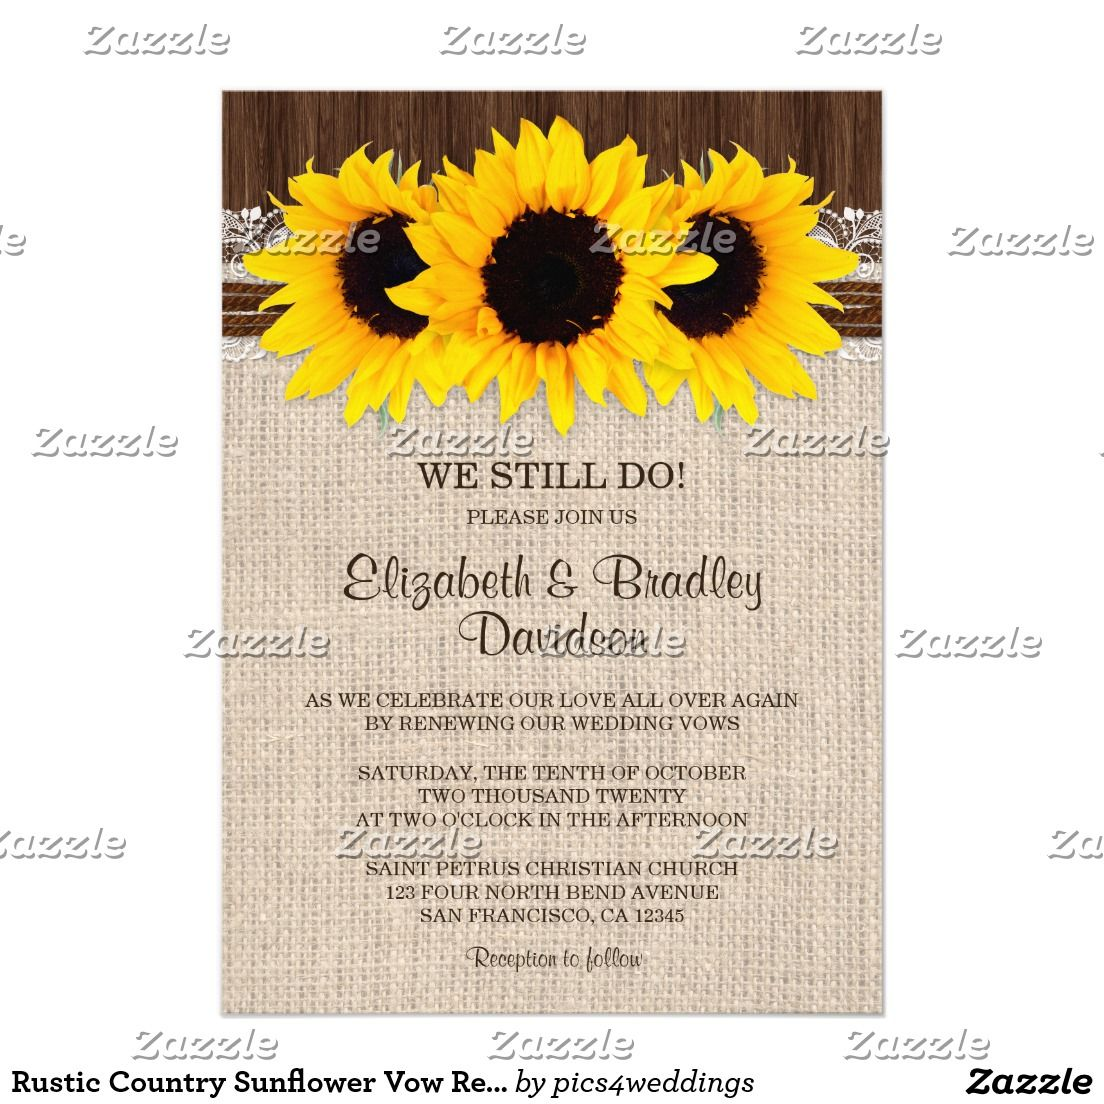 Rustic Country Sunflower Vow Renewal Reaffirmation Card | Rustic ...